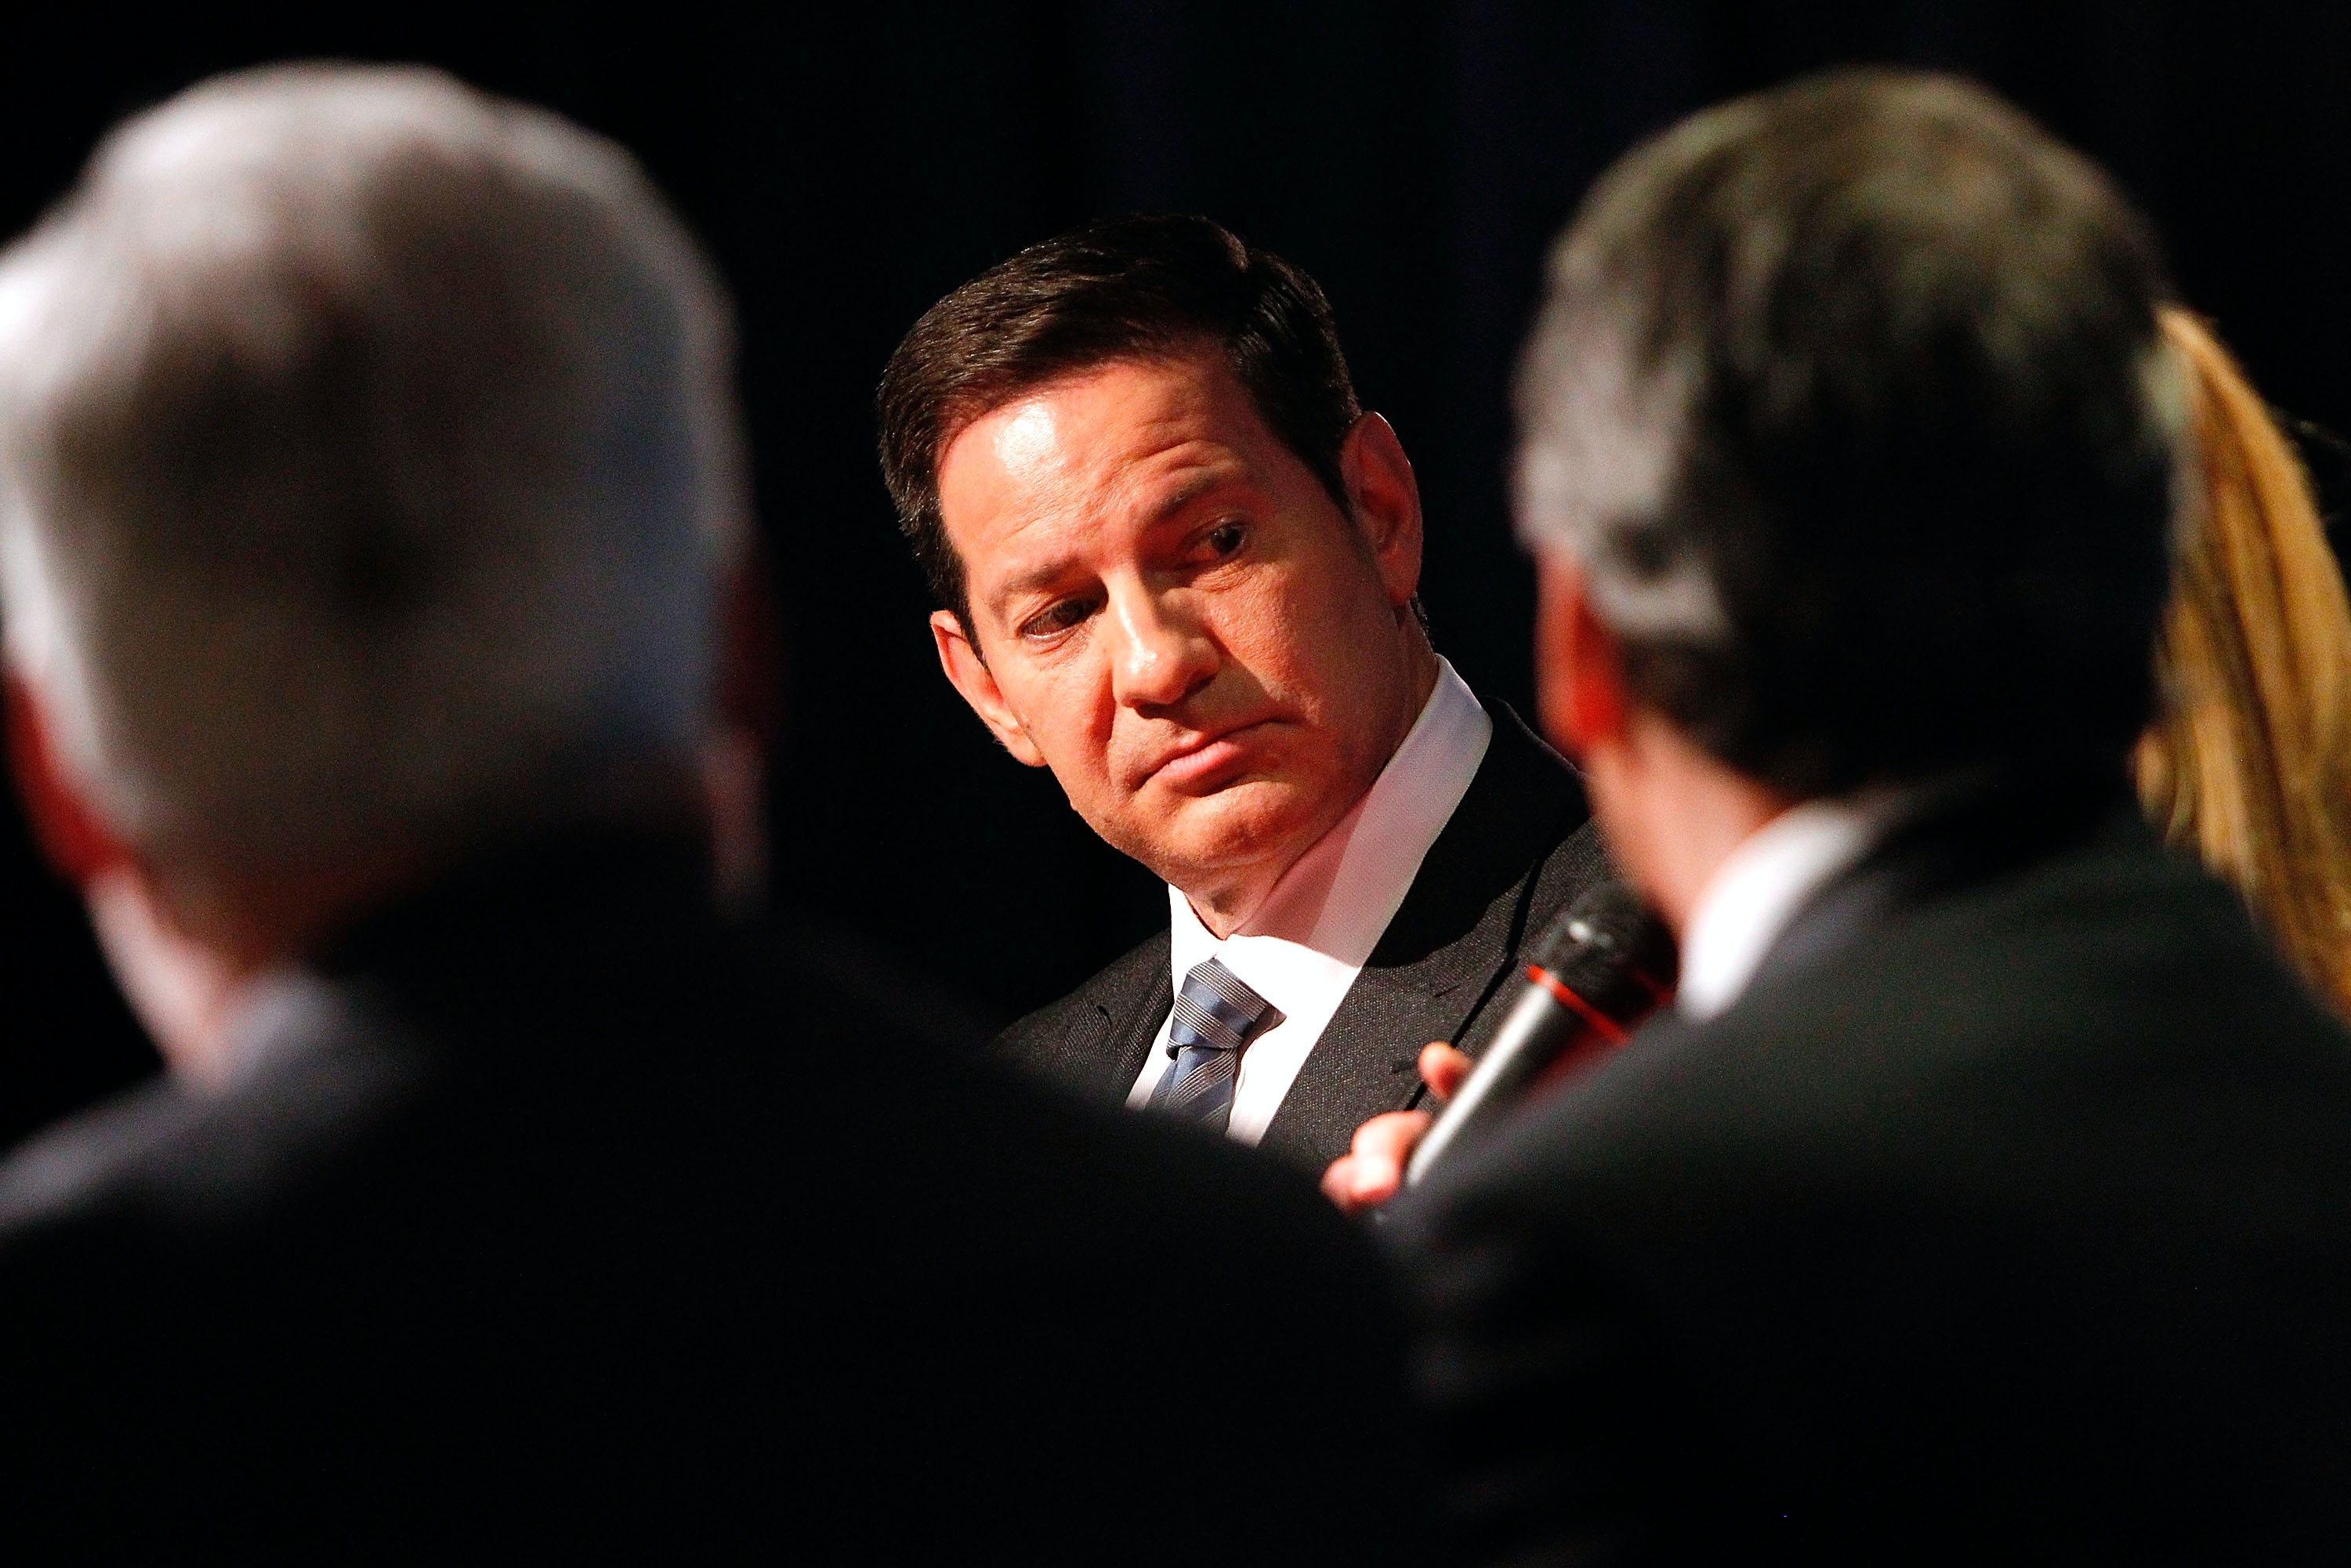 NBC News Analyst Mark Halperin Accused of Sexual Harassment